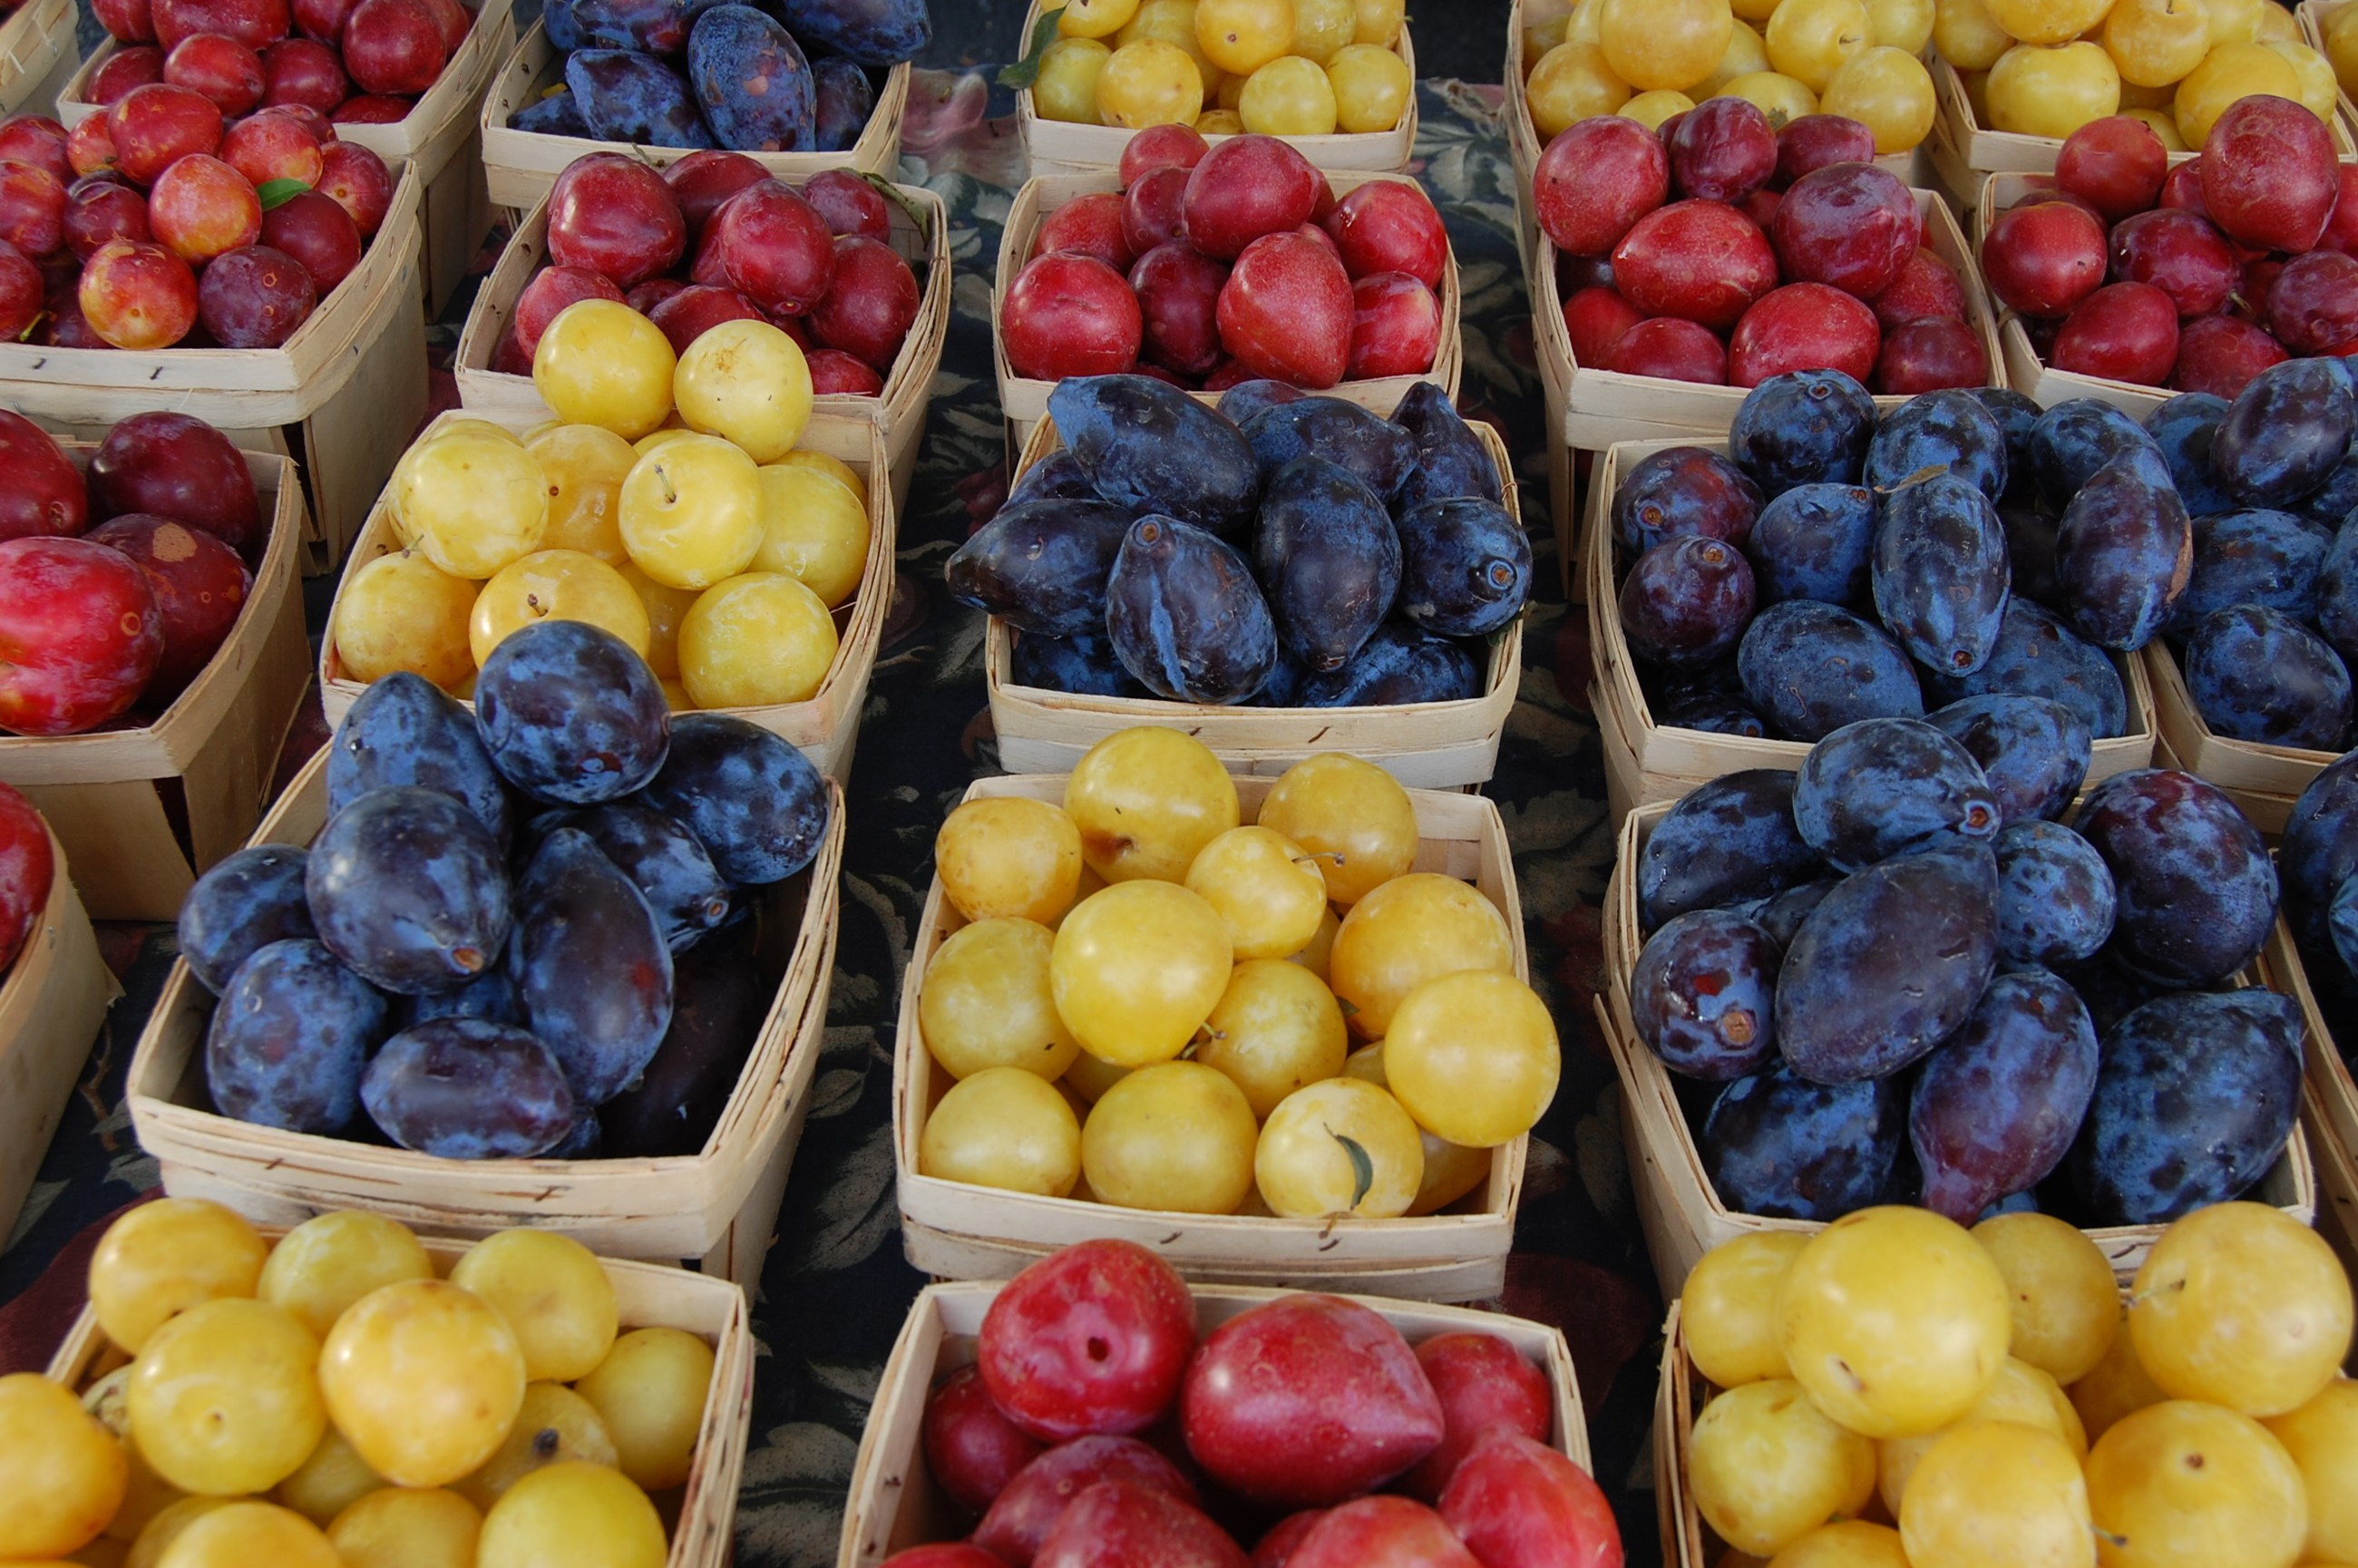 Groups of different colored plums